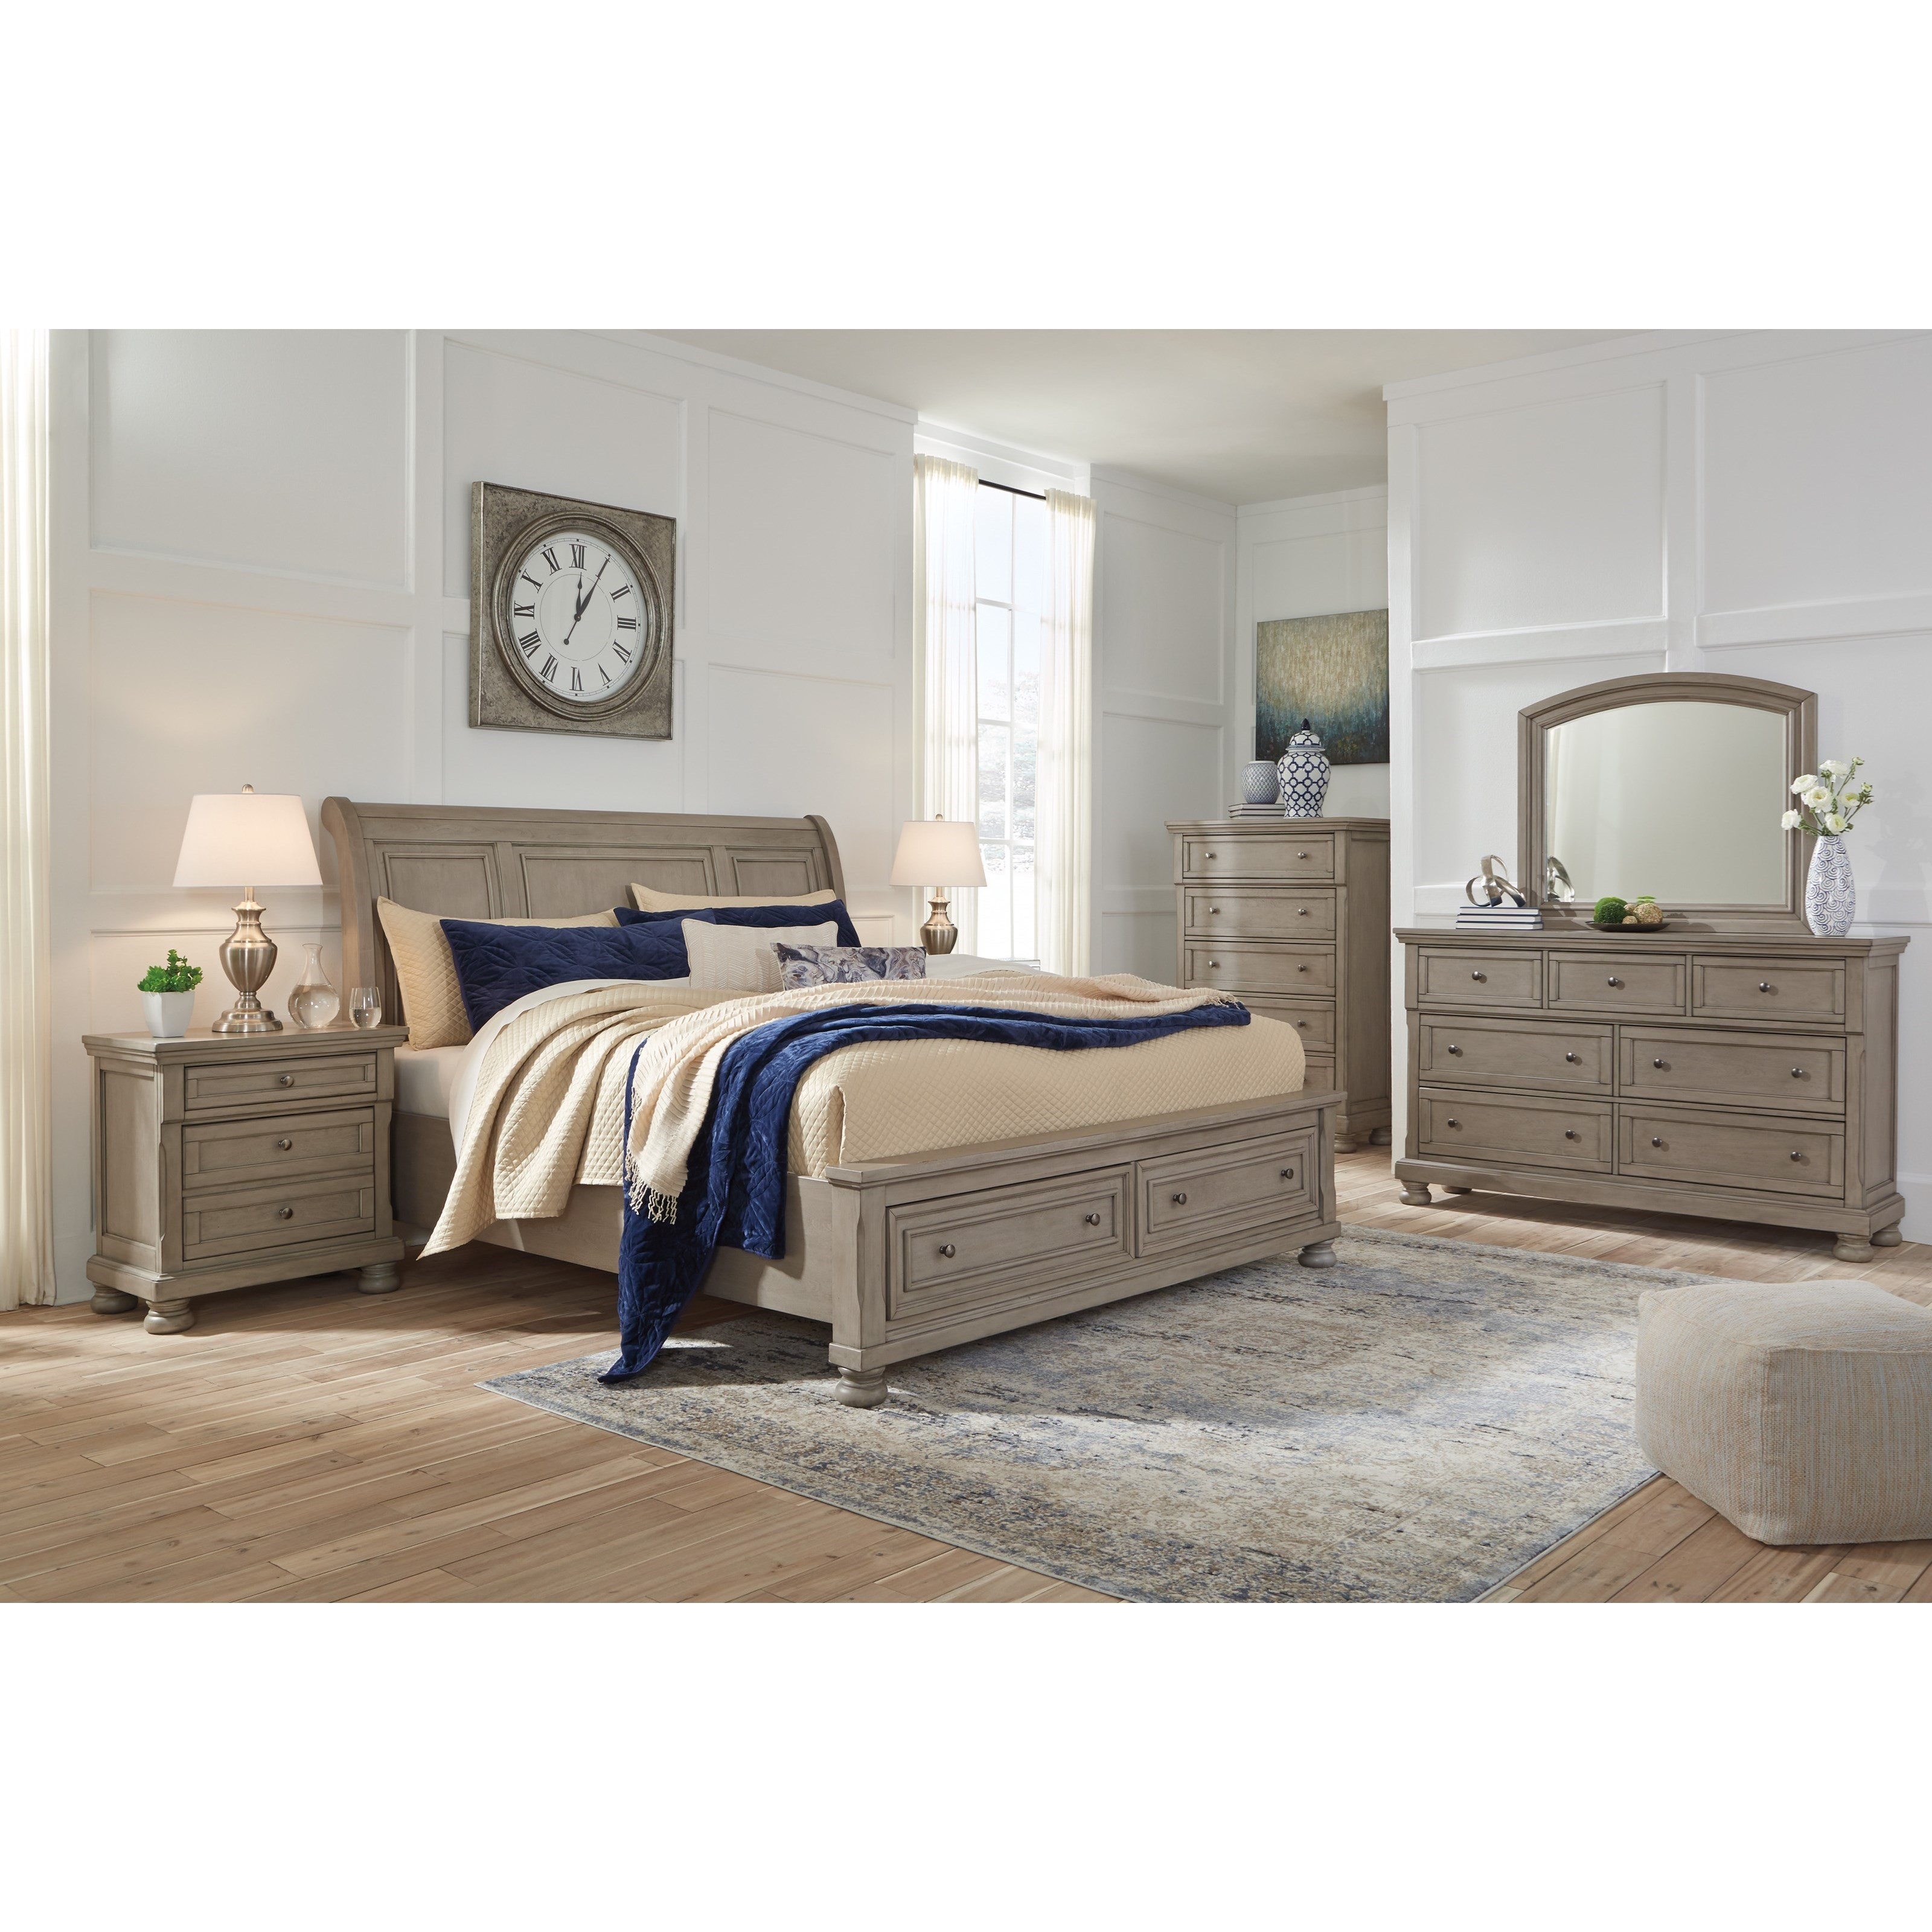 Signature Design by Ashley Lettner King Bedroom Group - Item Number: B733 K Bedroom Group 8